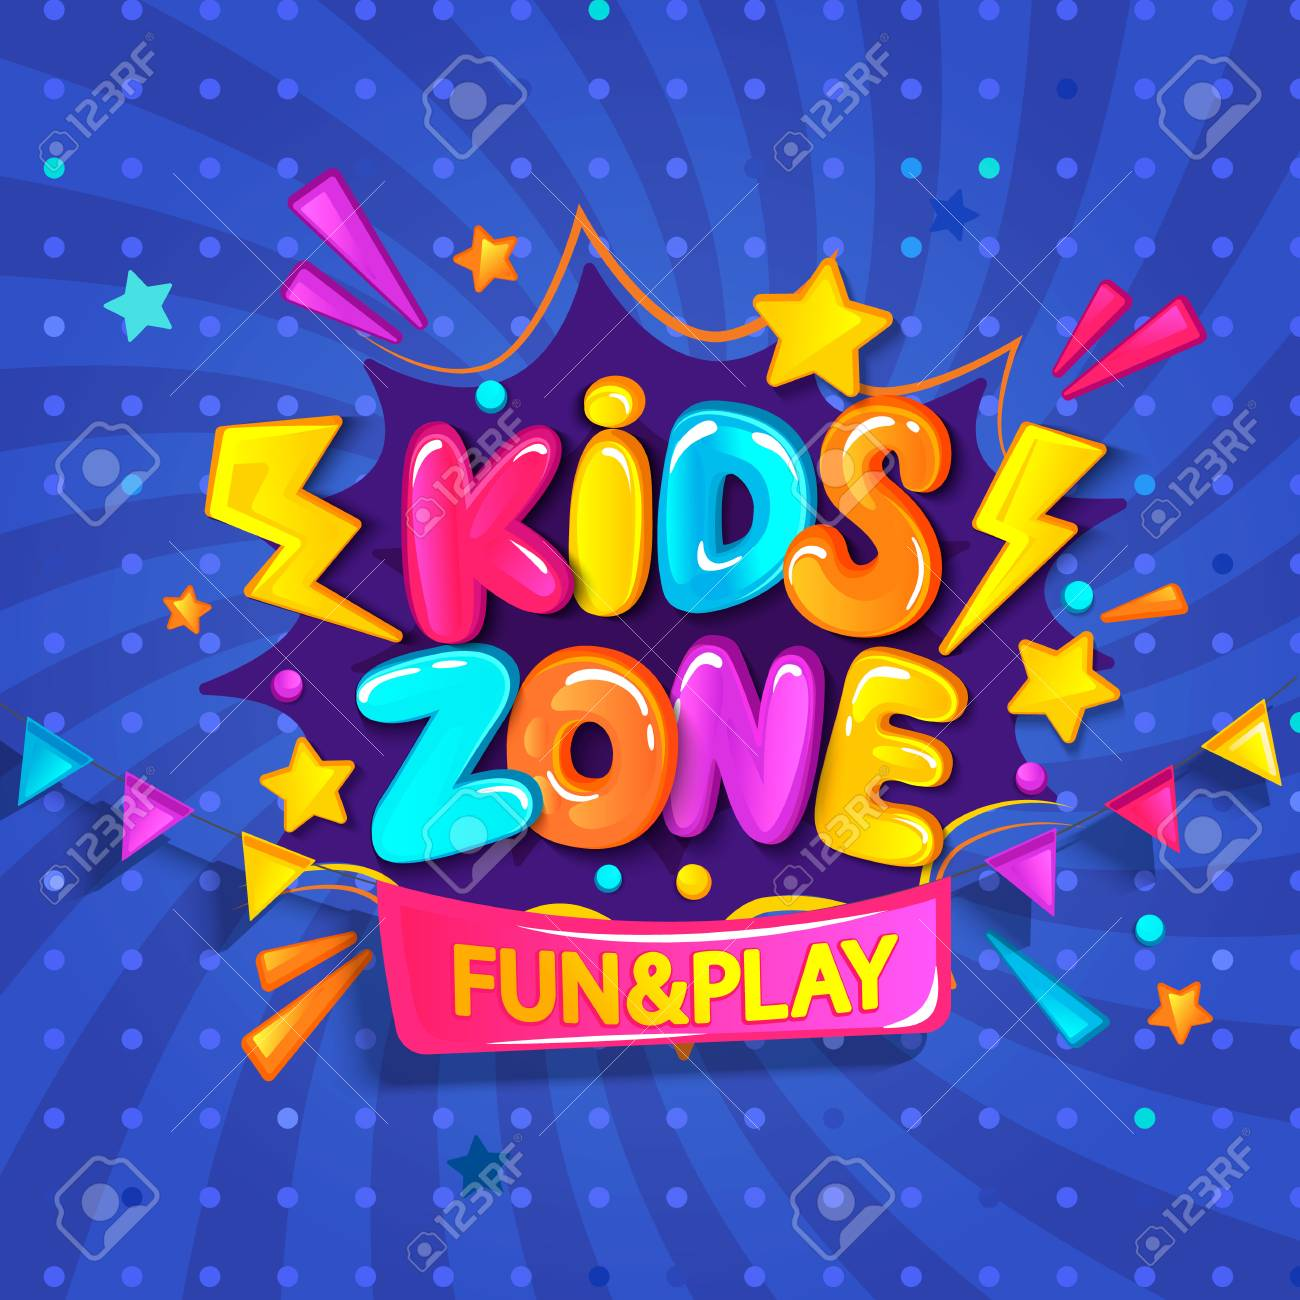 Super Banner for kids zone in cartoon style with burst background. Place for fun and play. Poster for childrens playroom decoration. Vector illustration. - 100254679